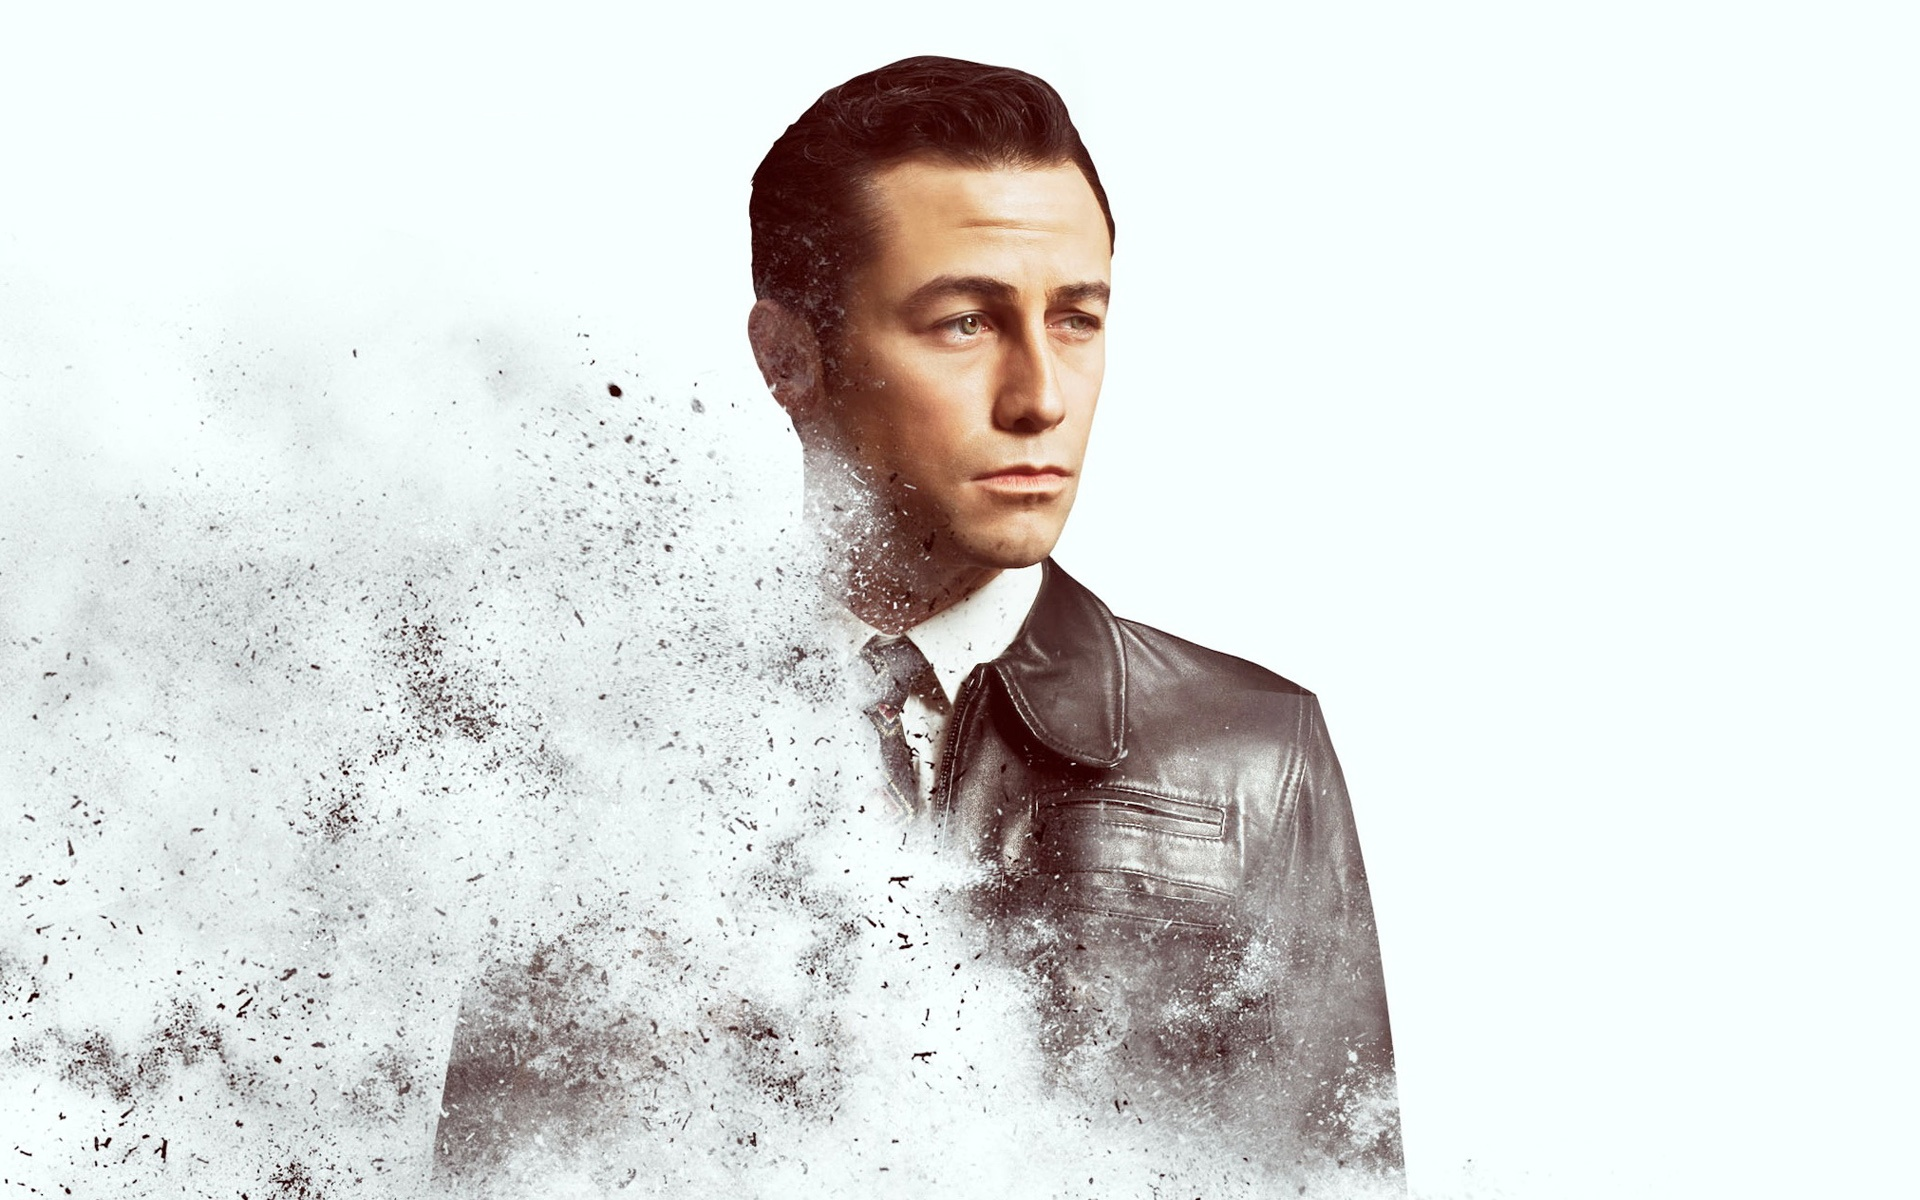 Joseph Gordon Levitt: Joseph Gordon-Levitt Wallpapers High Resolution And